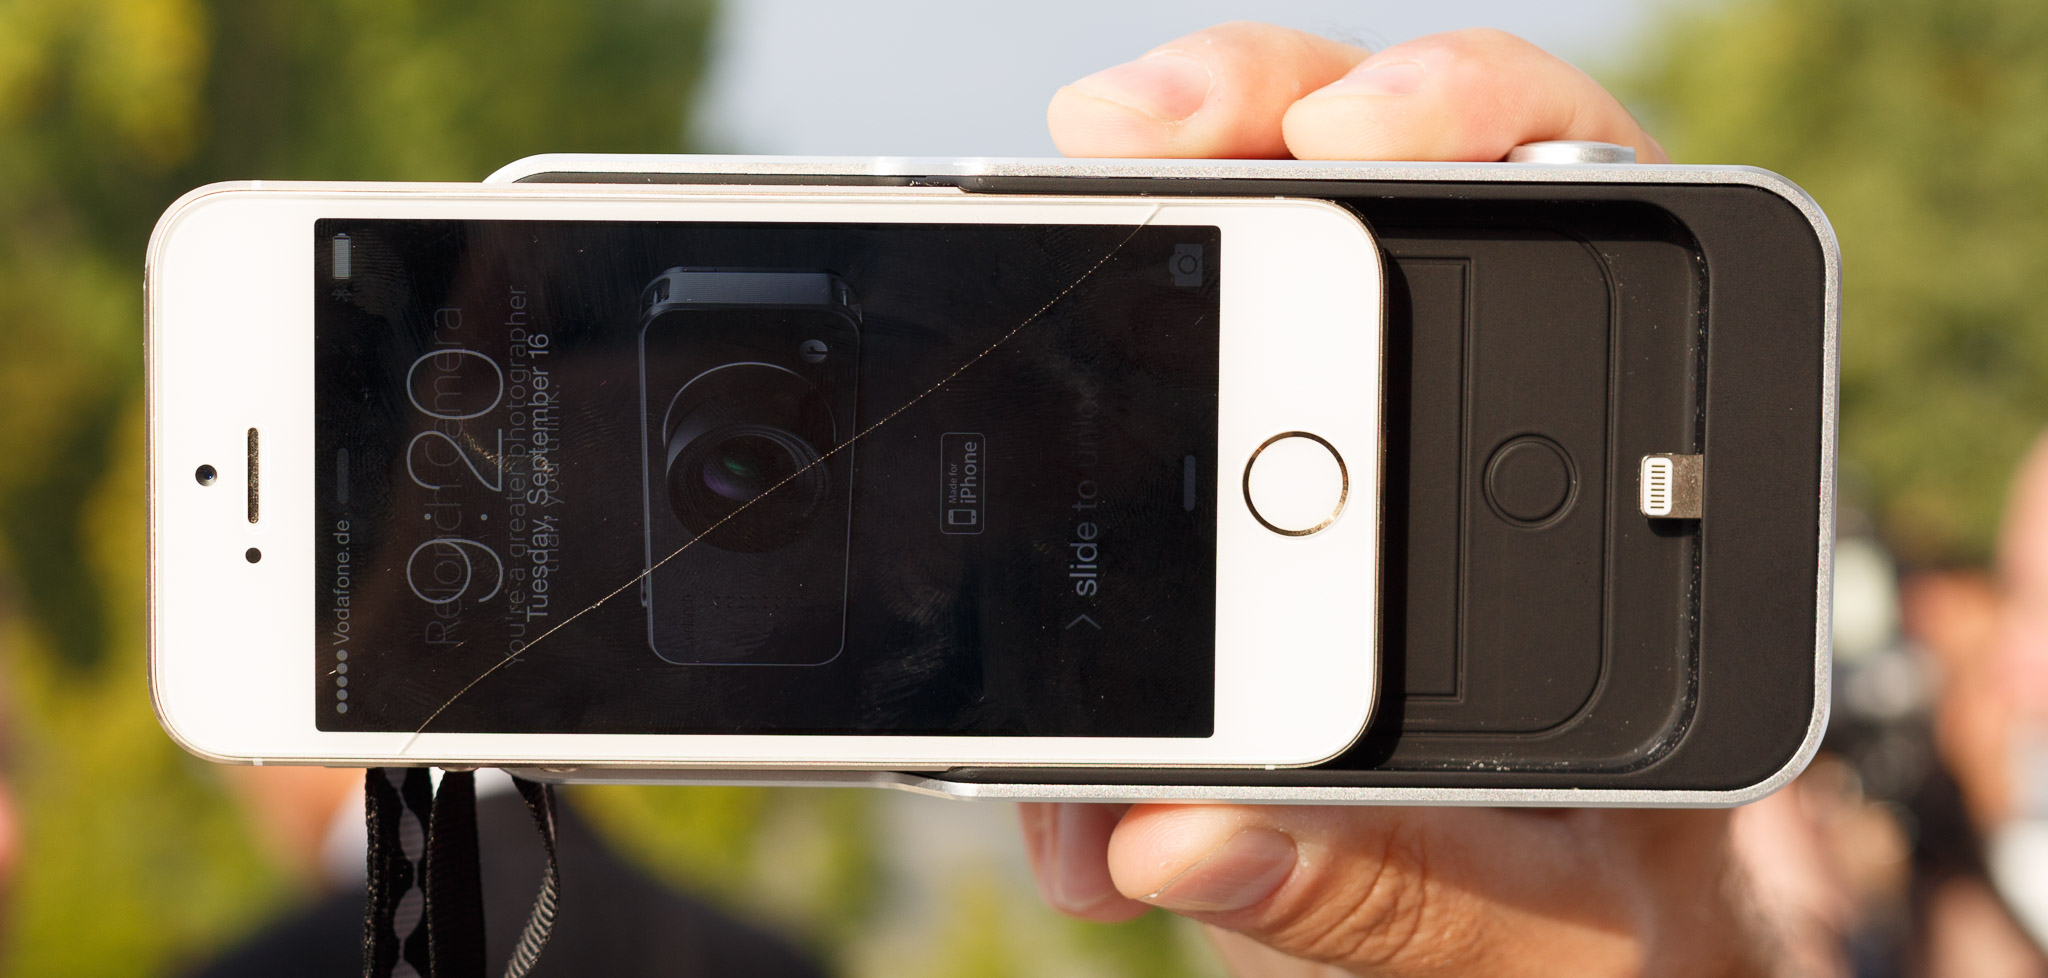 The iPhone slots into the Relonch Camera, linking with the Lightning connector.